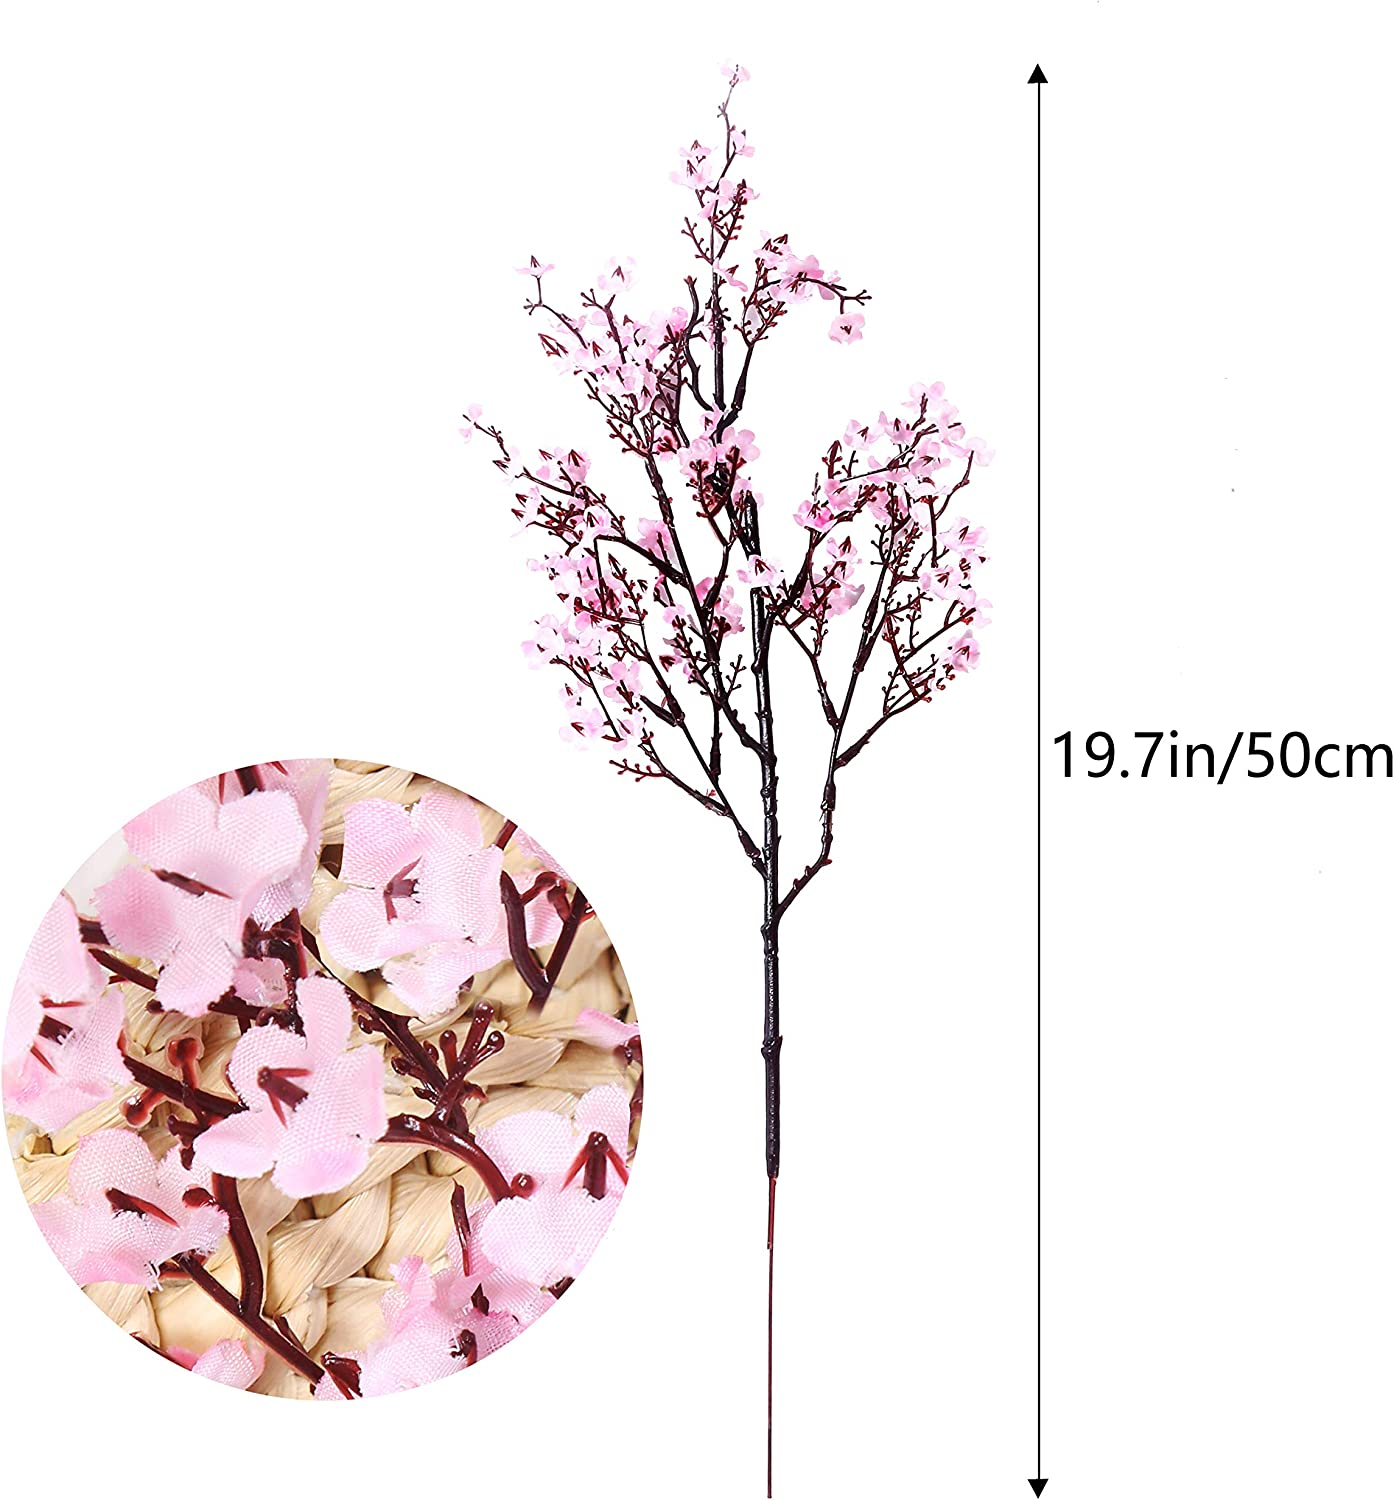 Bule) Momkids 6 Pcs Babies Breath Flowers Artificial Gypsophila Bouquet Faux Silk Flower Fake Real Touch Flower for Hotel Home Living Room Kitchen Bathroom Wedding Party DIY Decor